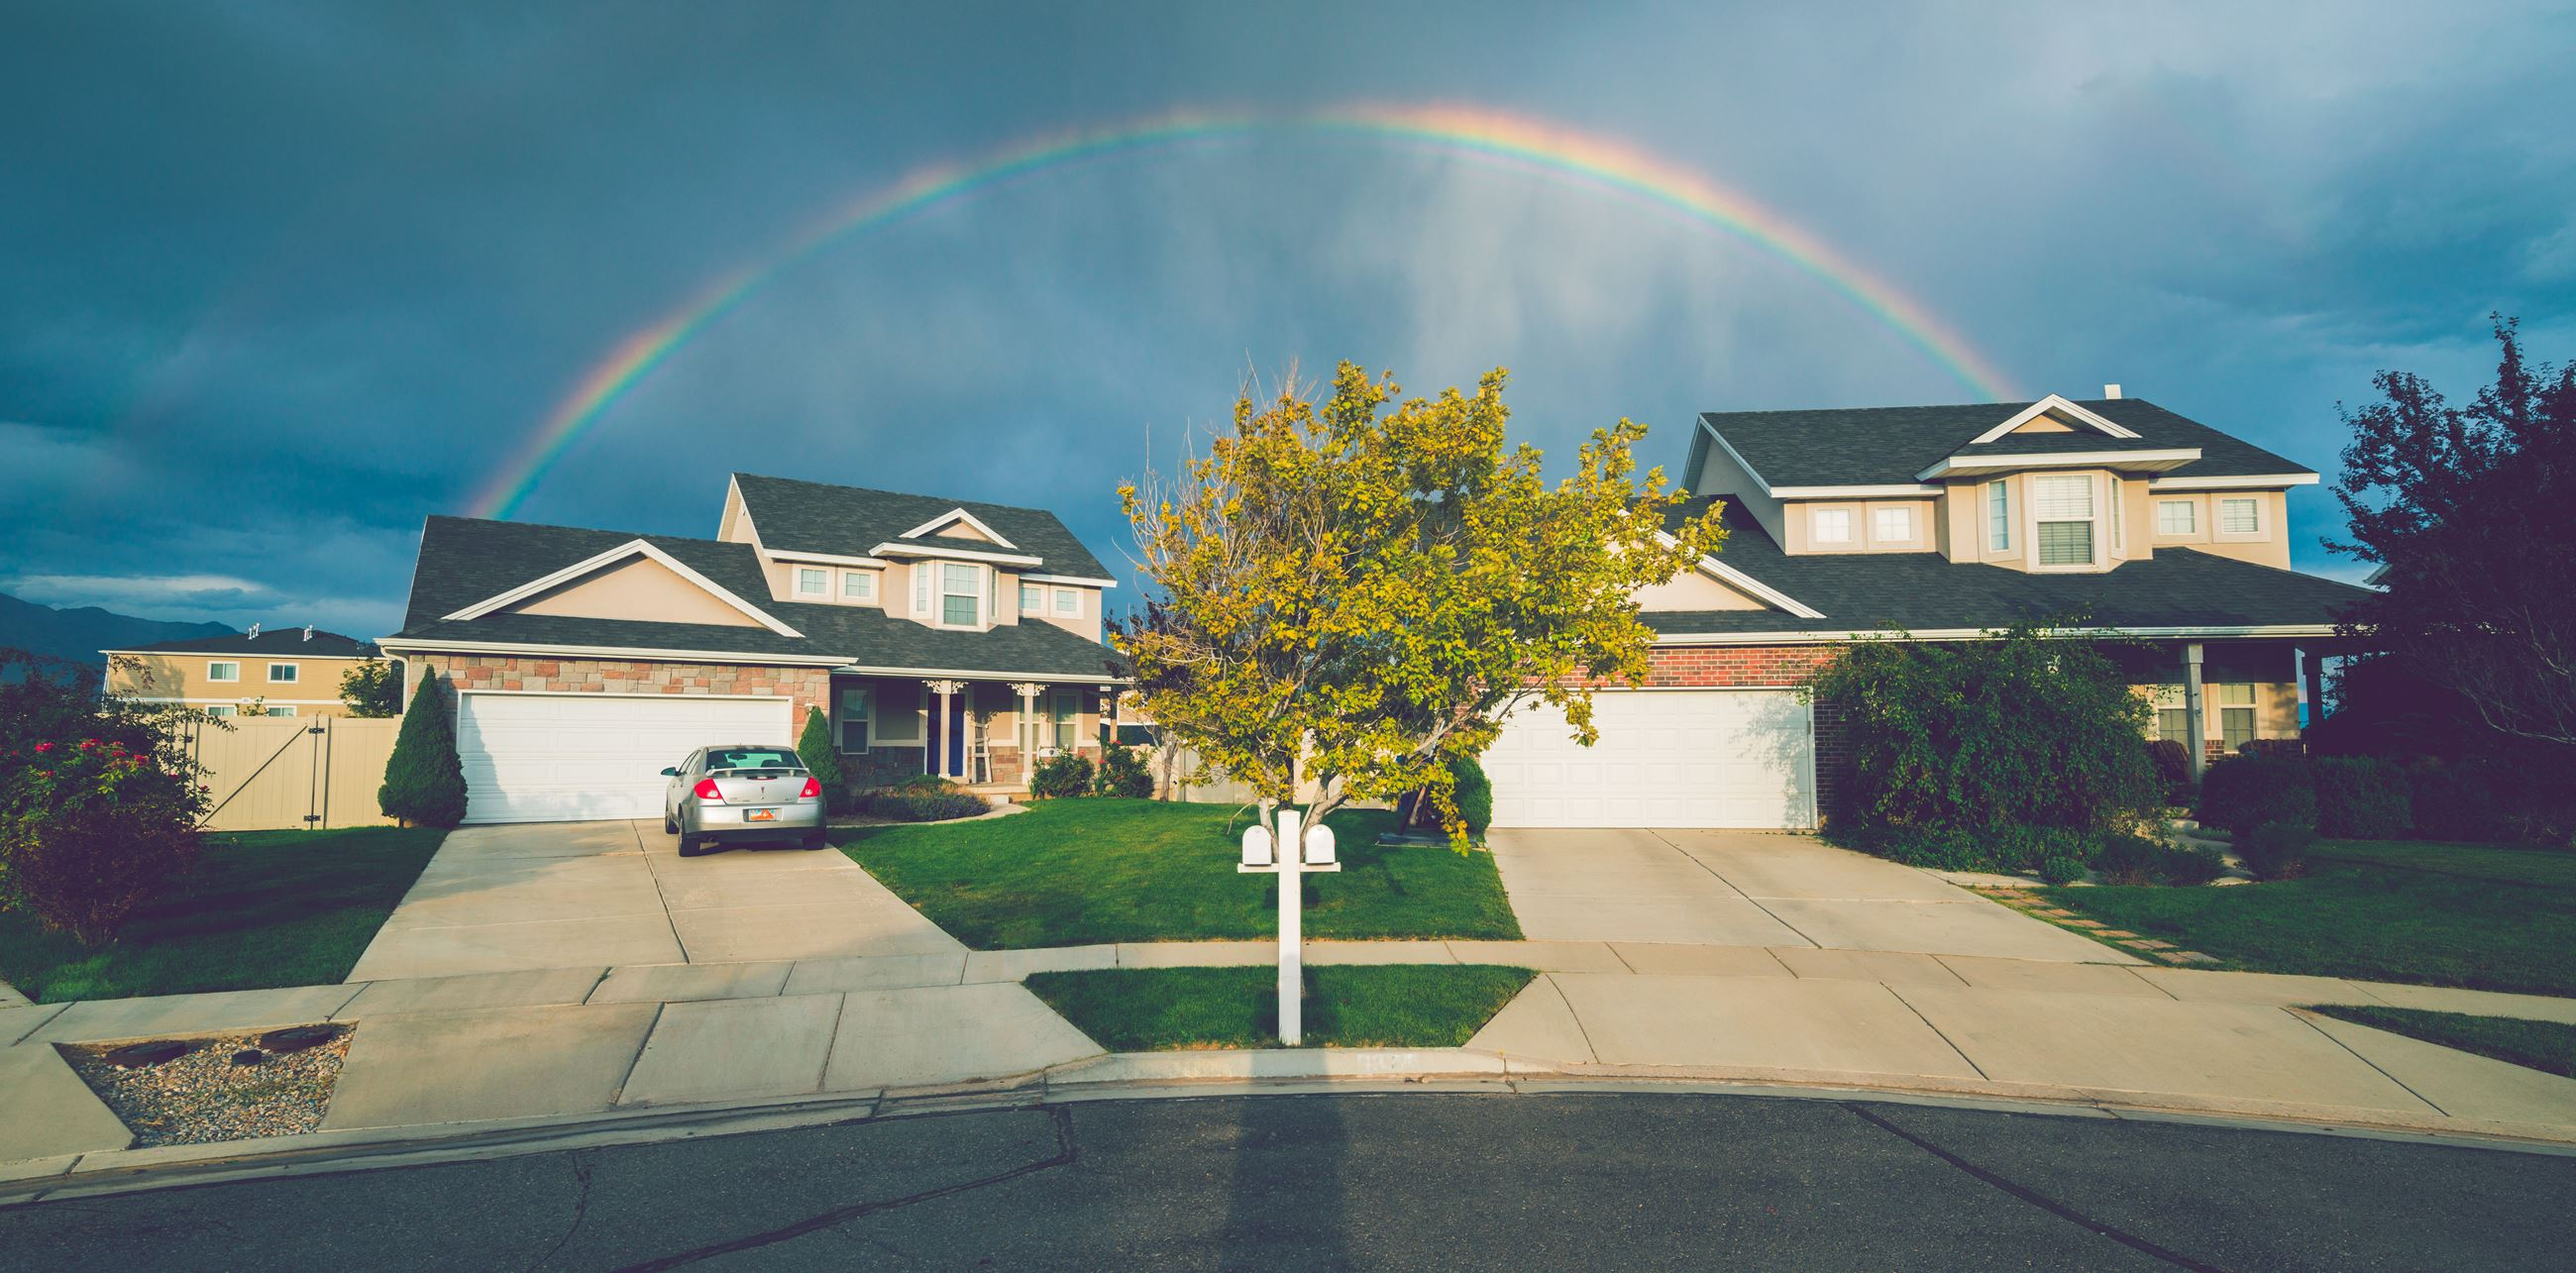 Rainbow over House, Photo by Ken Harvey